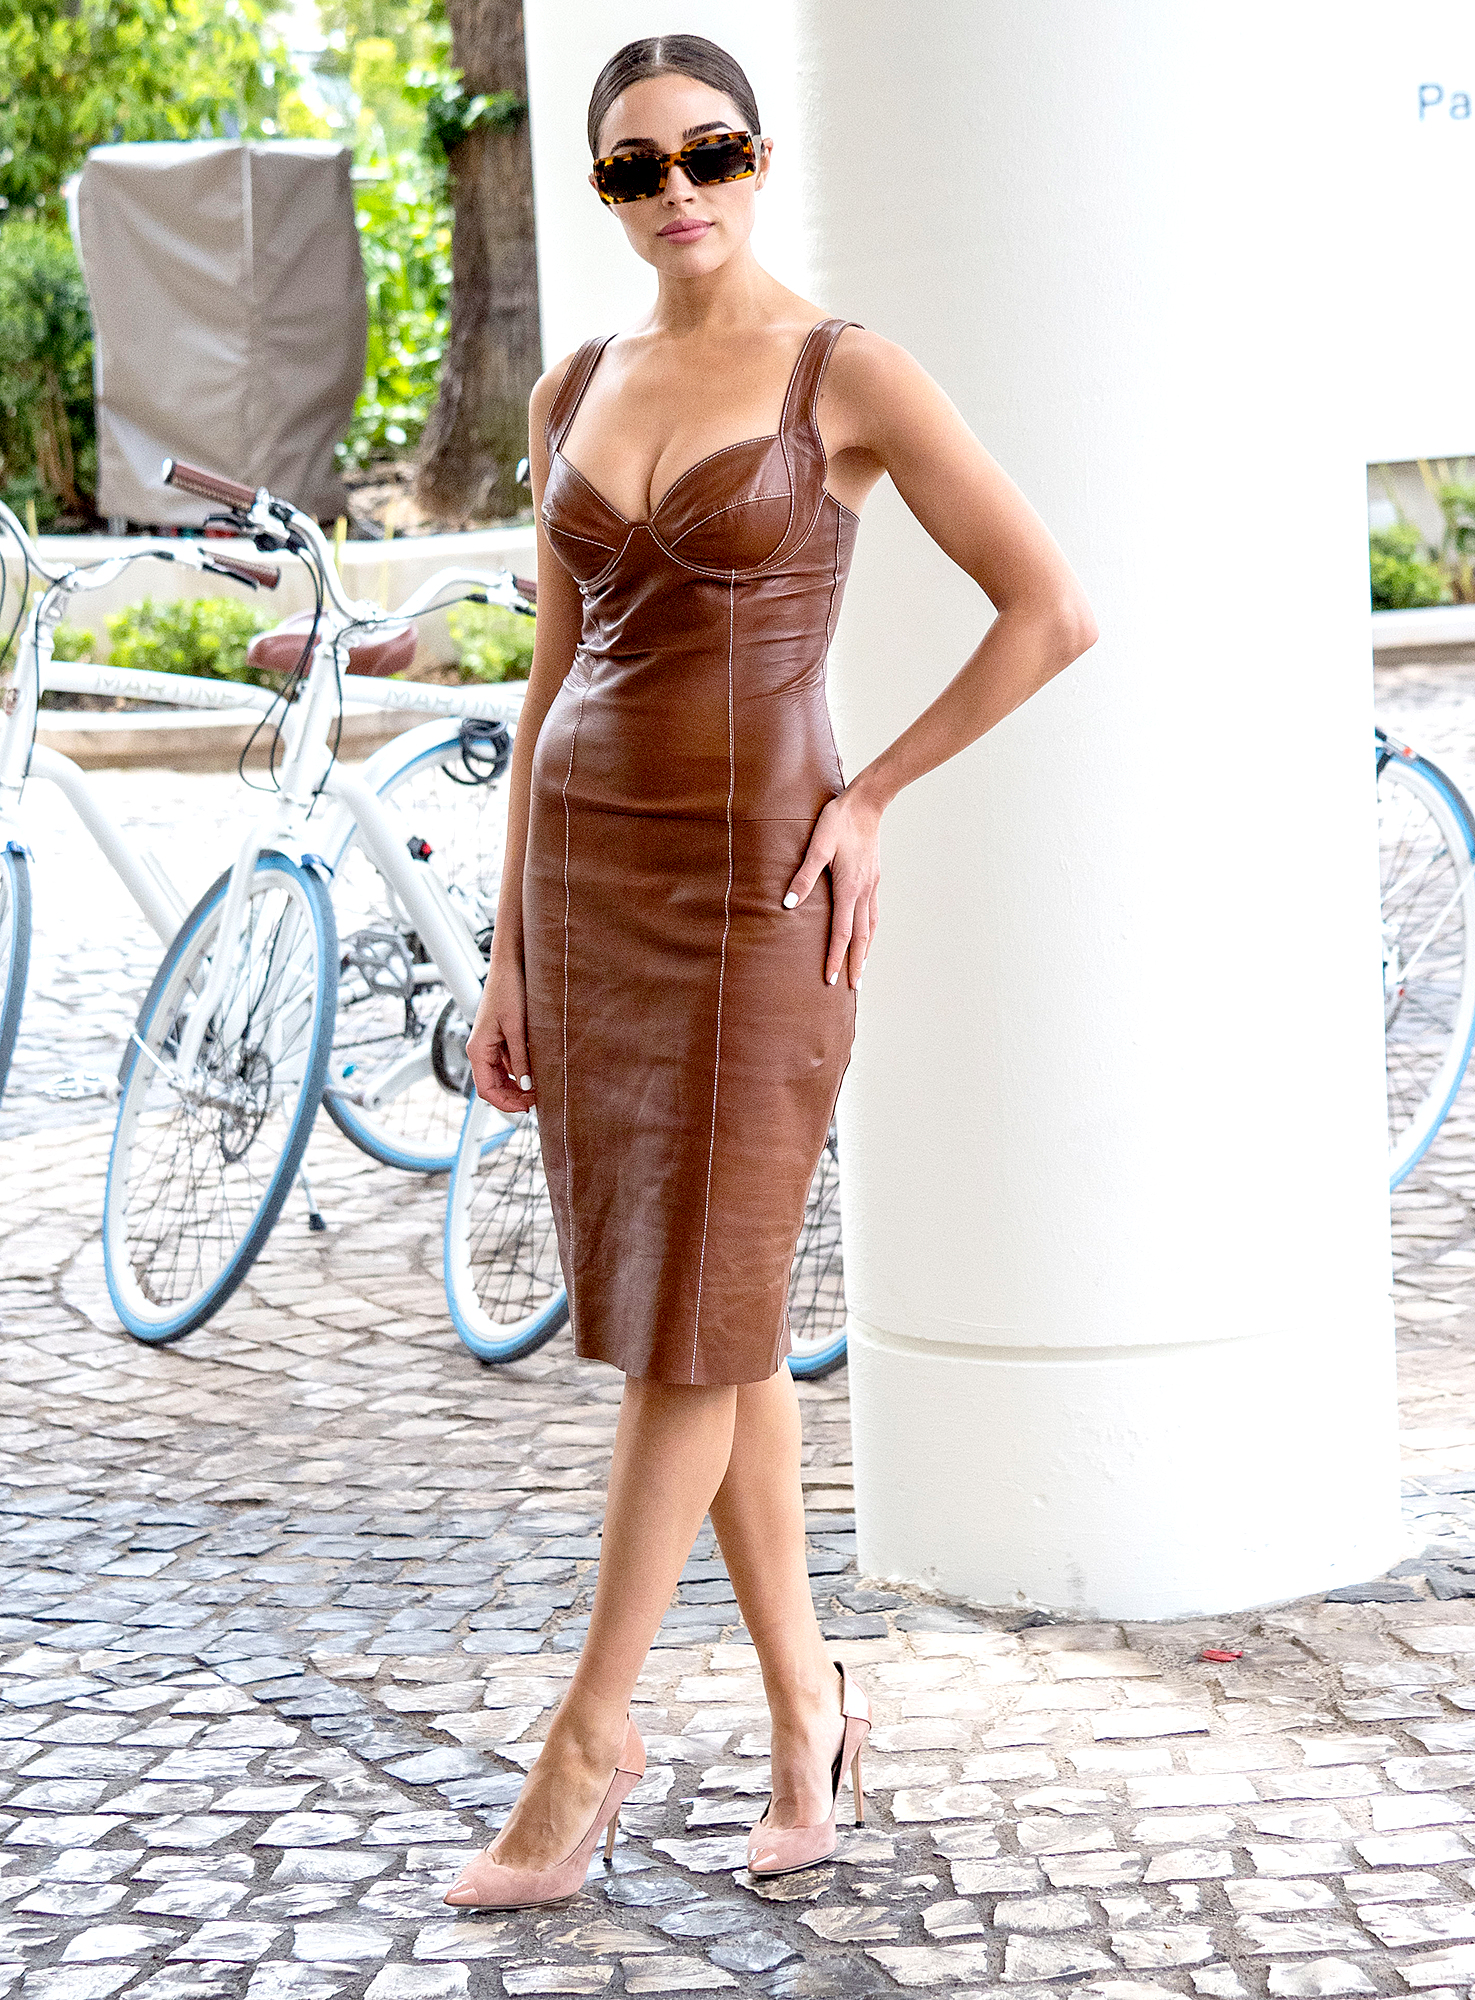 Olivia-Culpo - The former Miss Universe looked lovely in a leather bustier-inspired frock on Thursday, May 23.